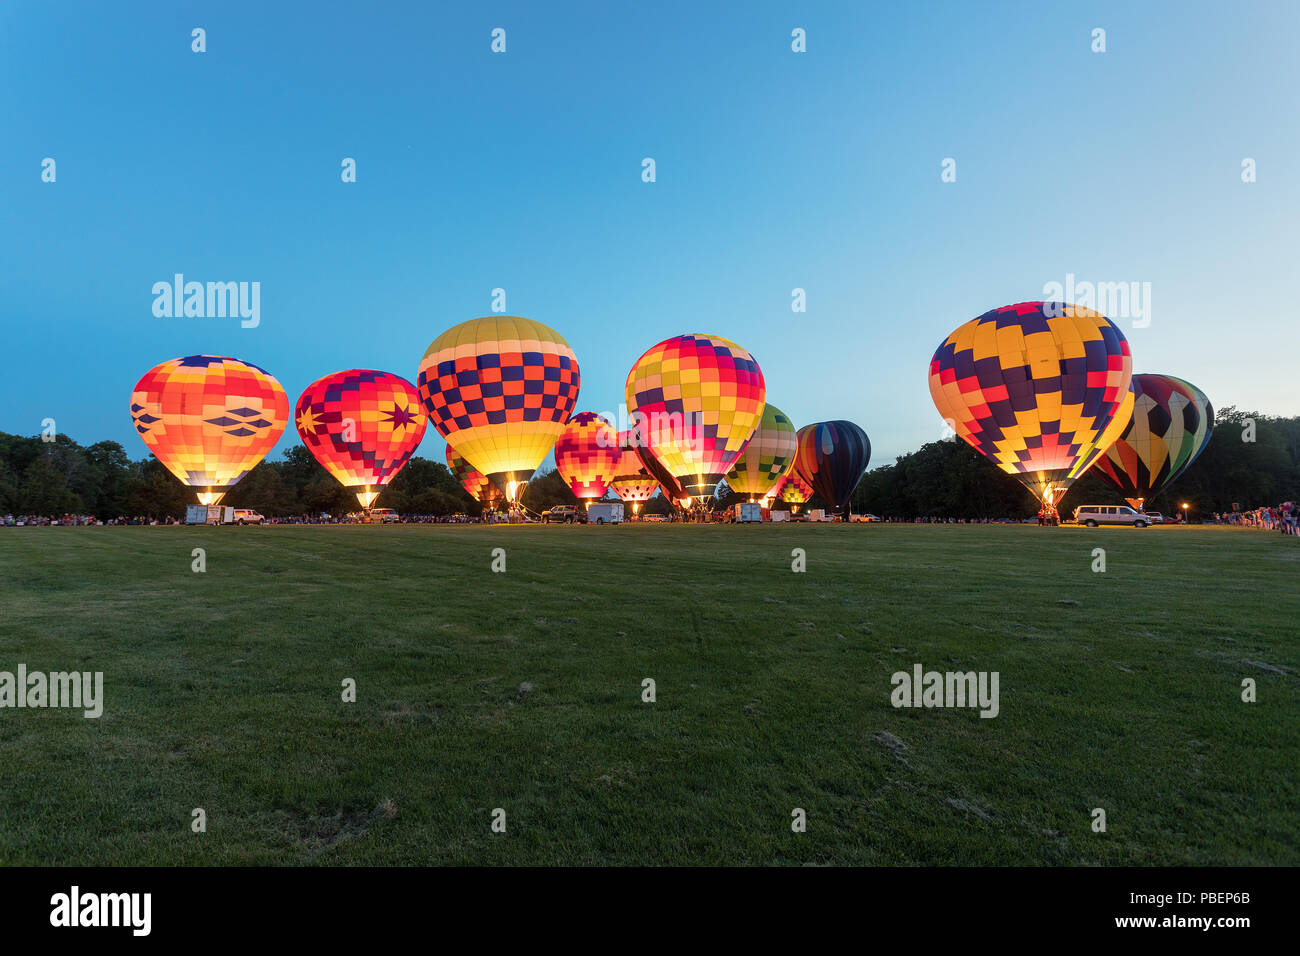 Galesburg, Illinois, USA. 26nd July, 2018. Approximately twenty hot airs balloons came to Galesburg, Illinois; USA for the annual Galesburg Balloon Race at Lake Storey. The event has been held in Galesburg since 2000. - Stock Image